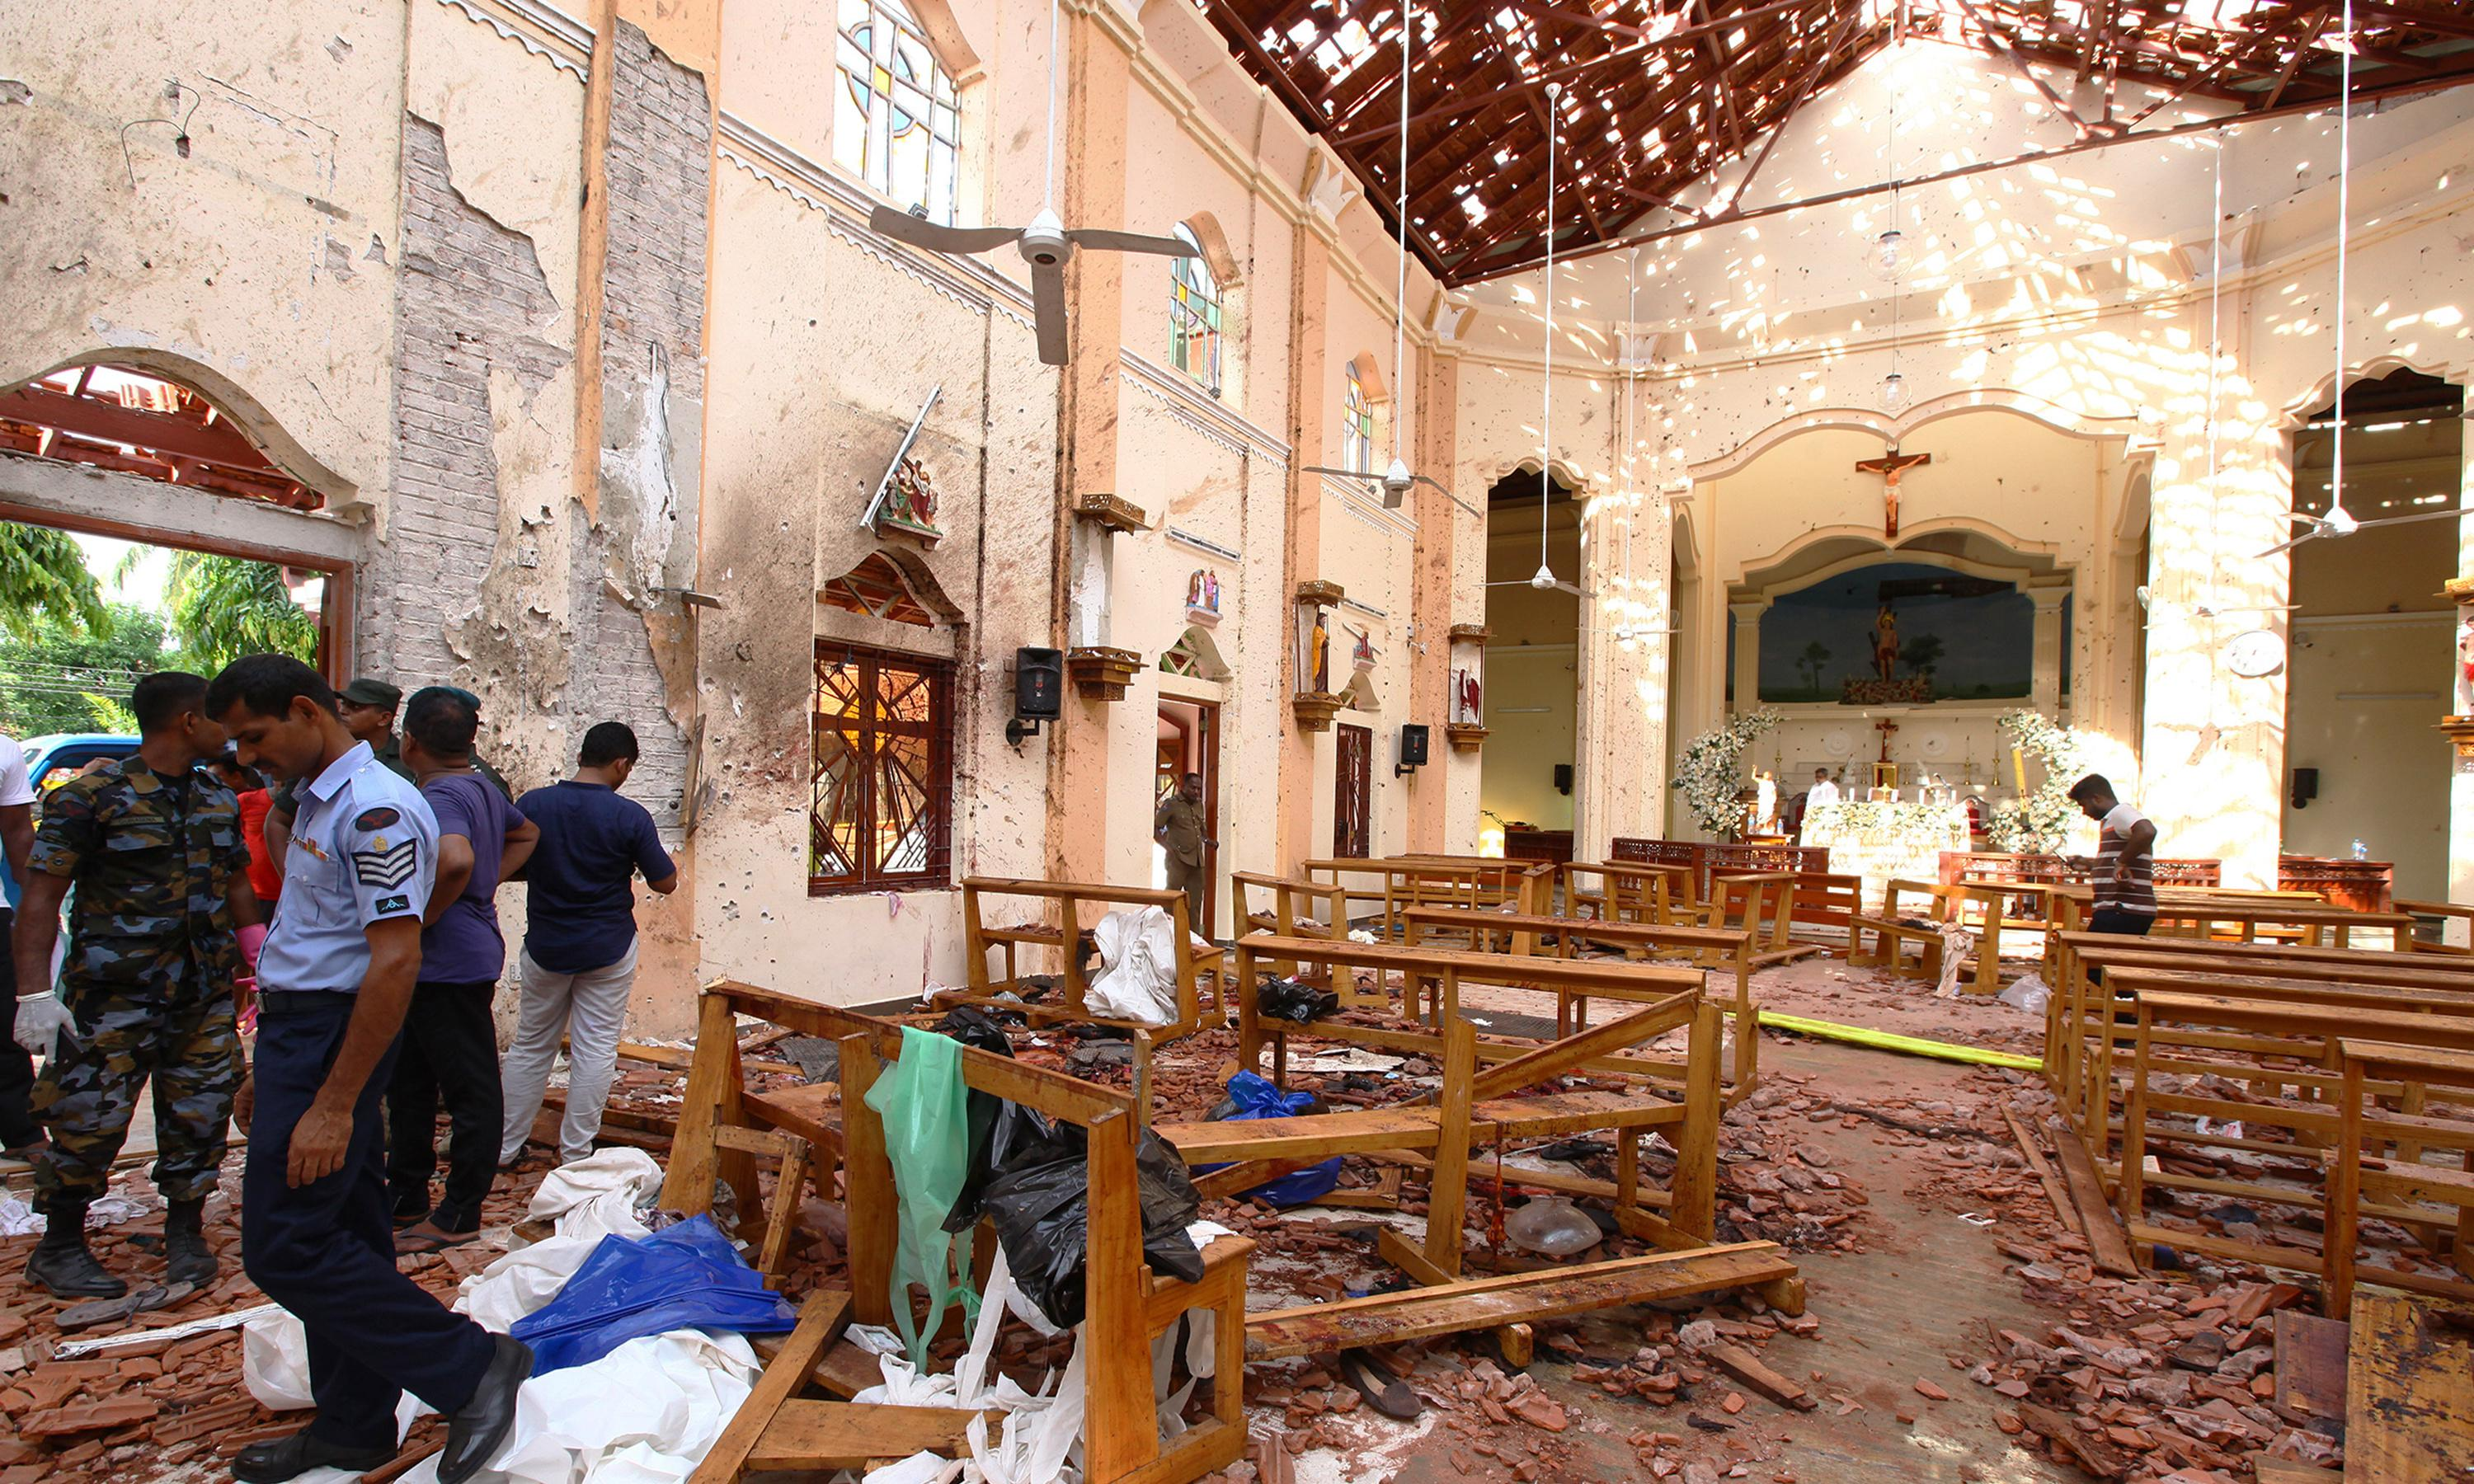 What do we know about the Sri Lanka attackers?